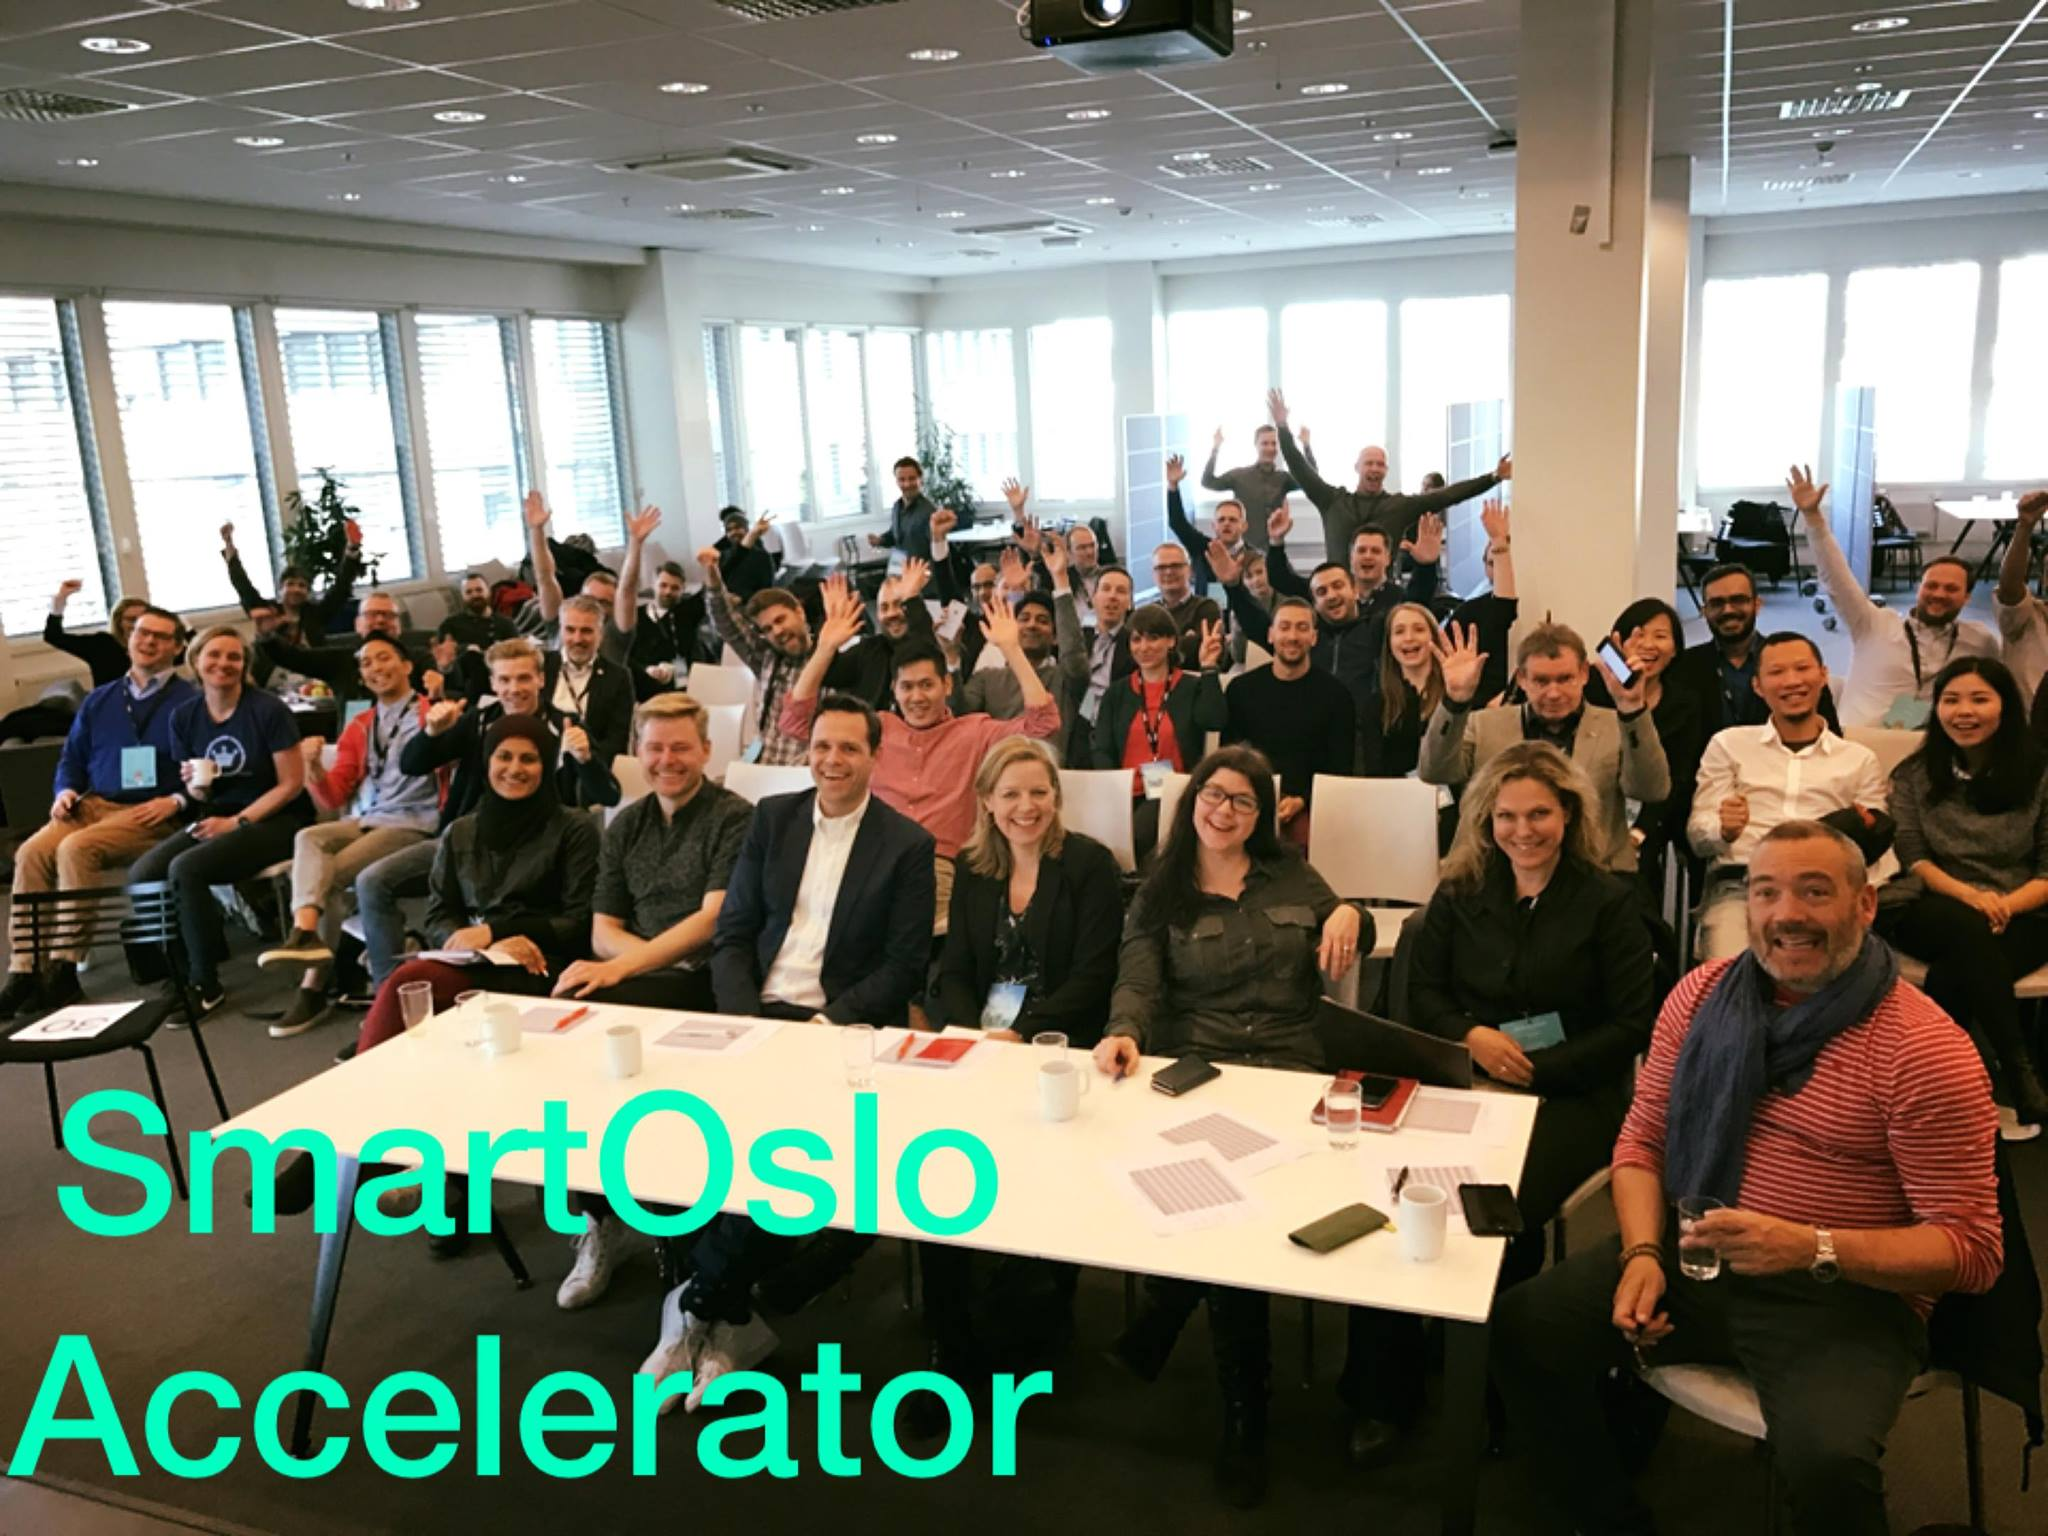 Mentoring at the SmartOslo Accelerator - 01.04.2017 - Tøyen Startup Village - Tin will partake in the workshop, and mentoring the participants in the pitching session. SmartOslo Accelerator is the first portal launched to create a dialogue between the City of Oslo and the startup community.Read More!